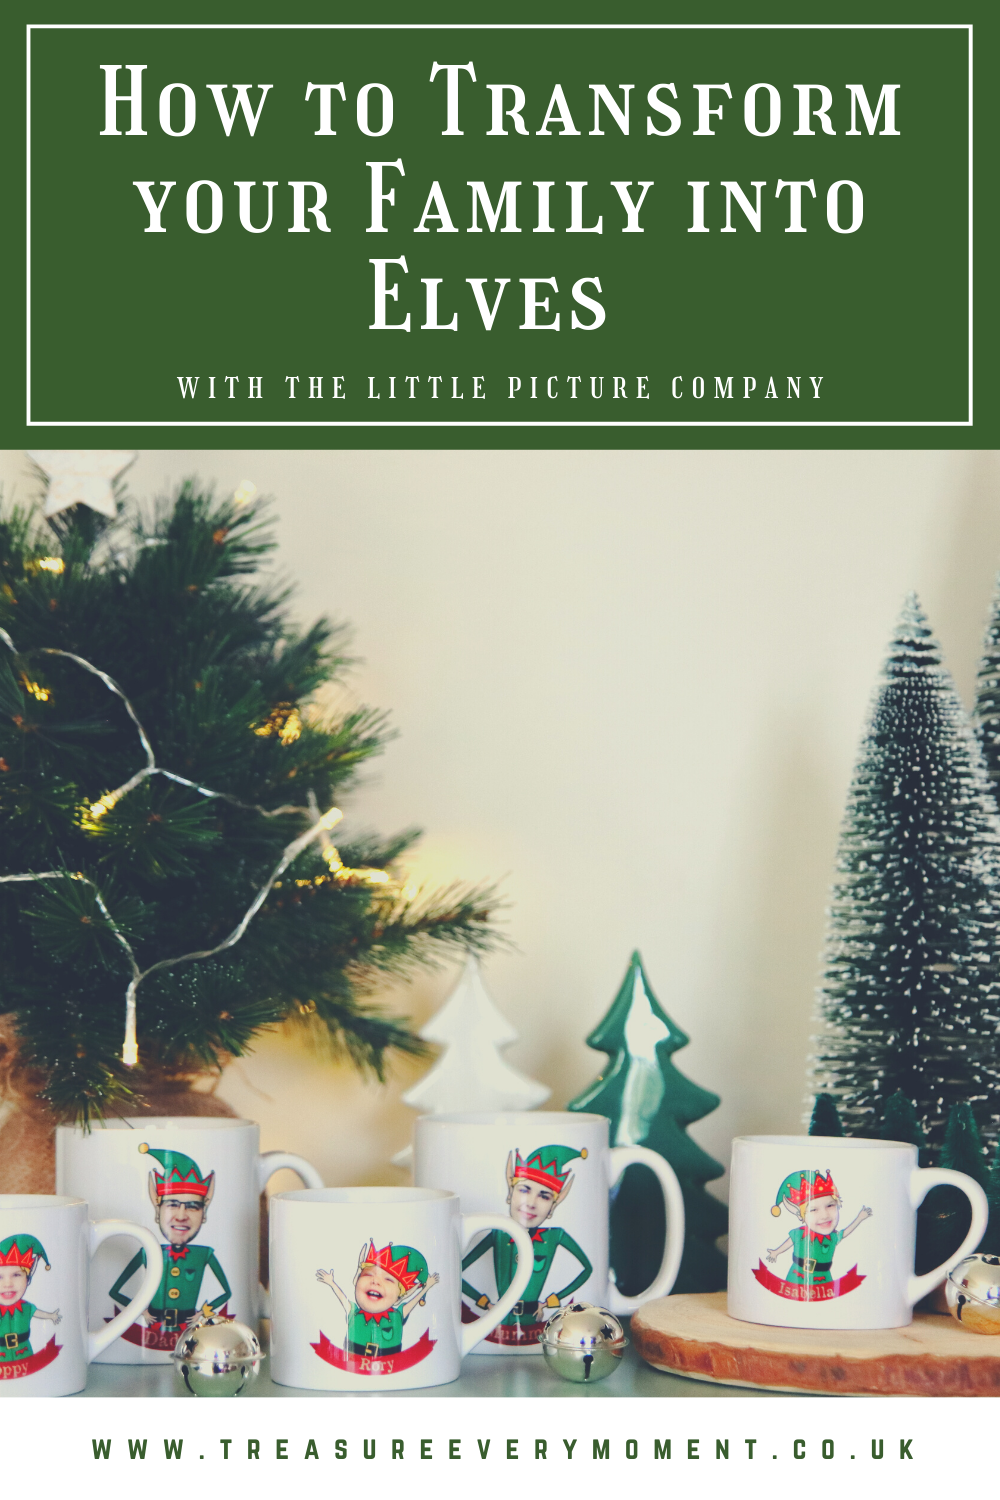 CHRISTMAS: How to Transform your Family into Elves with The Little Picture Company